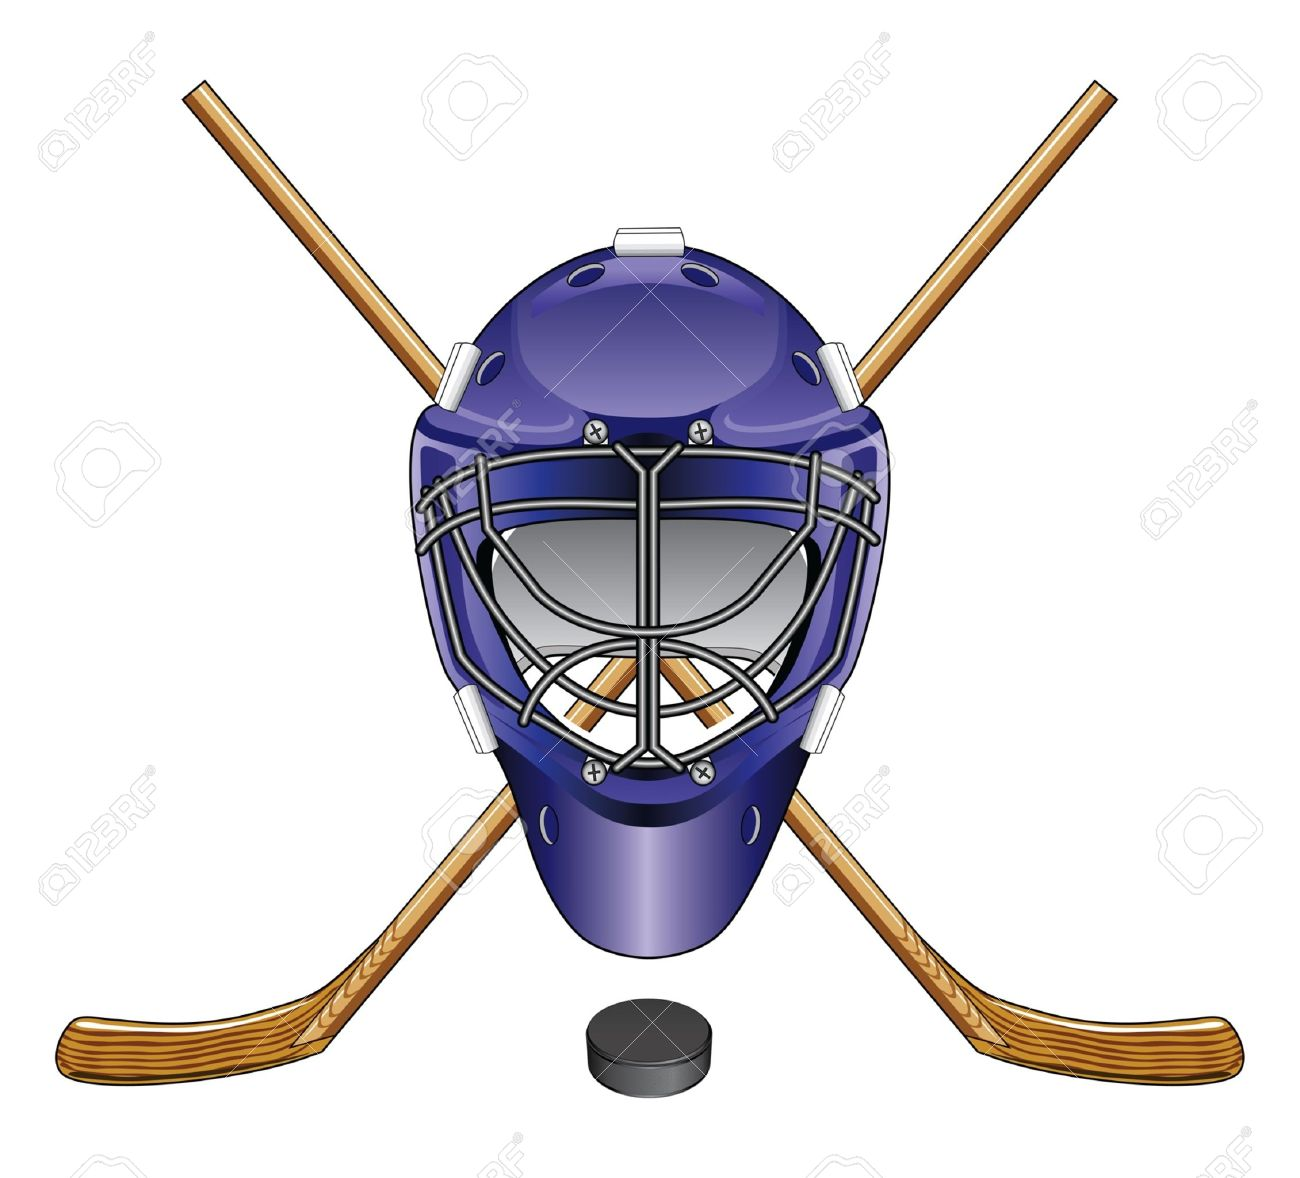 Ice Hockey Goalie Mask Sticks And Puck Is An Illustration Of